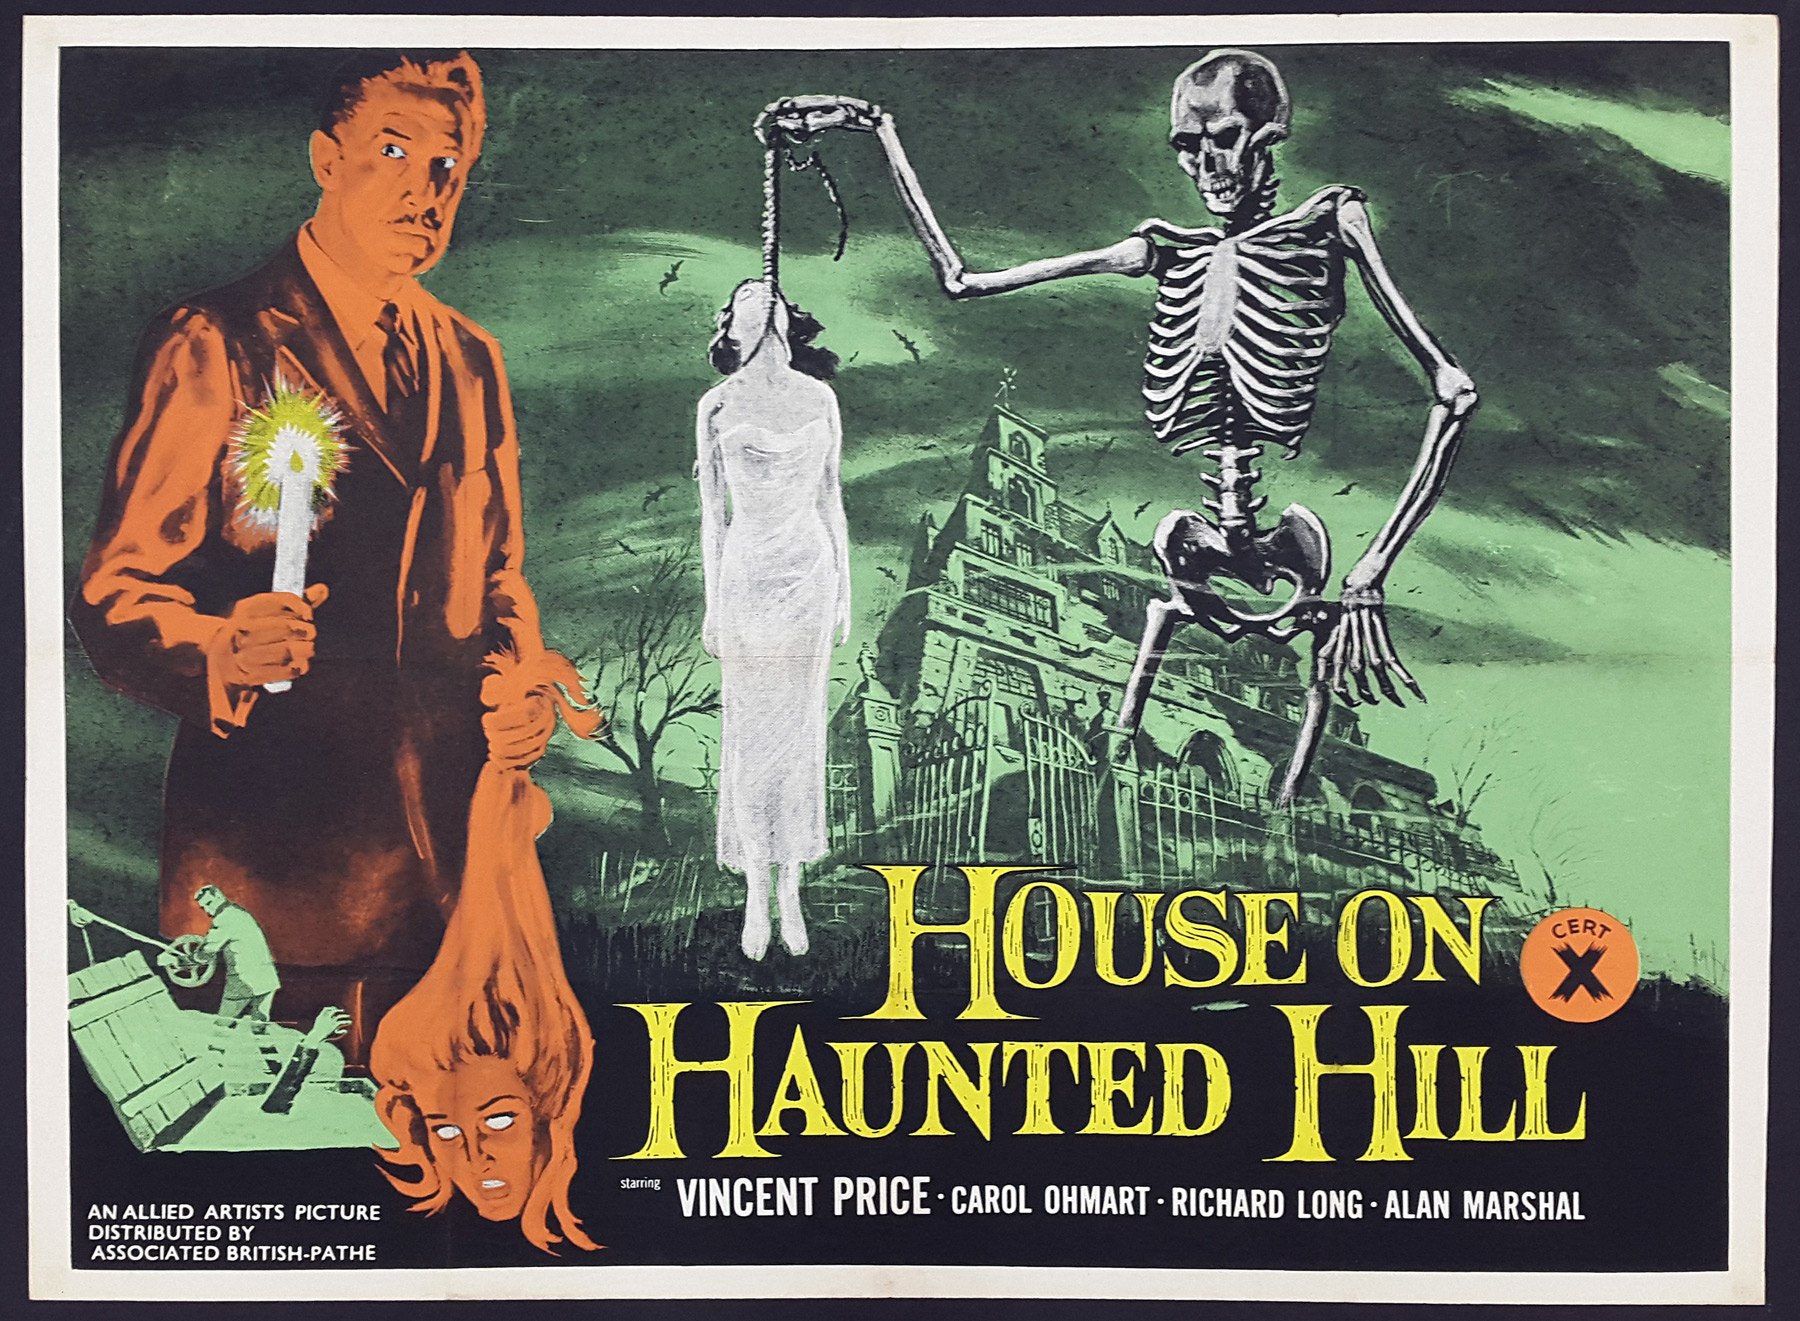 THE HOUSE ON HAUNTED HILL (1959) Original Vintage UK Quad Film ...